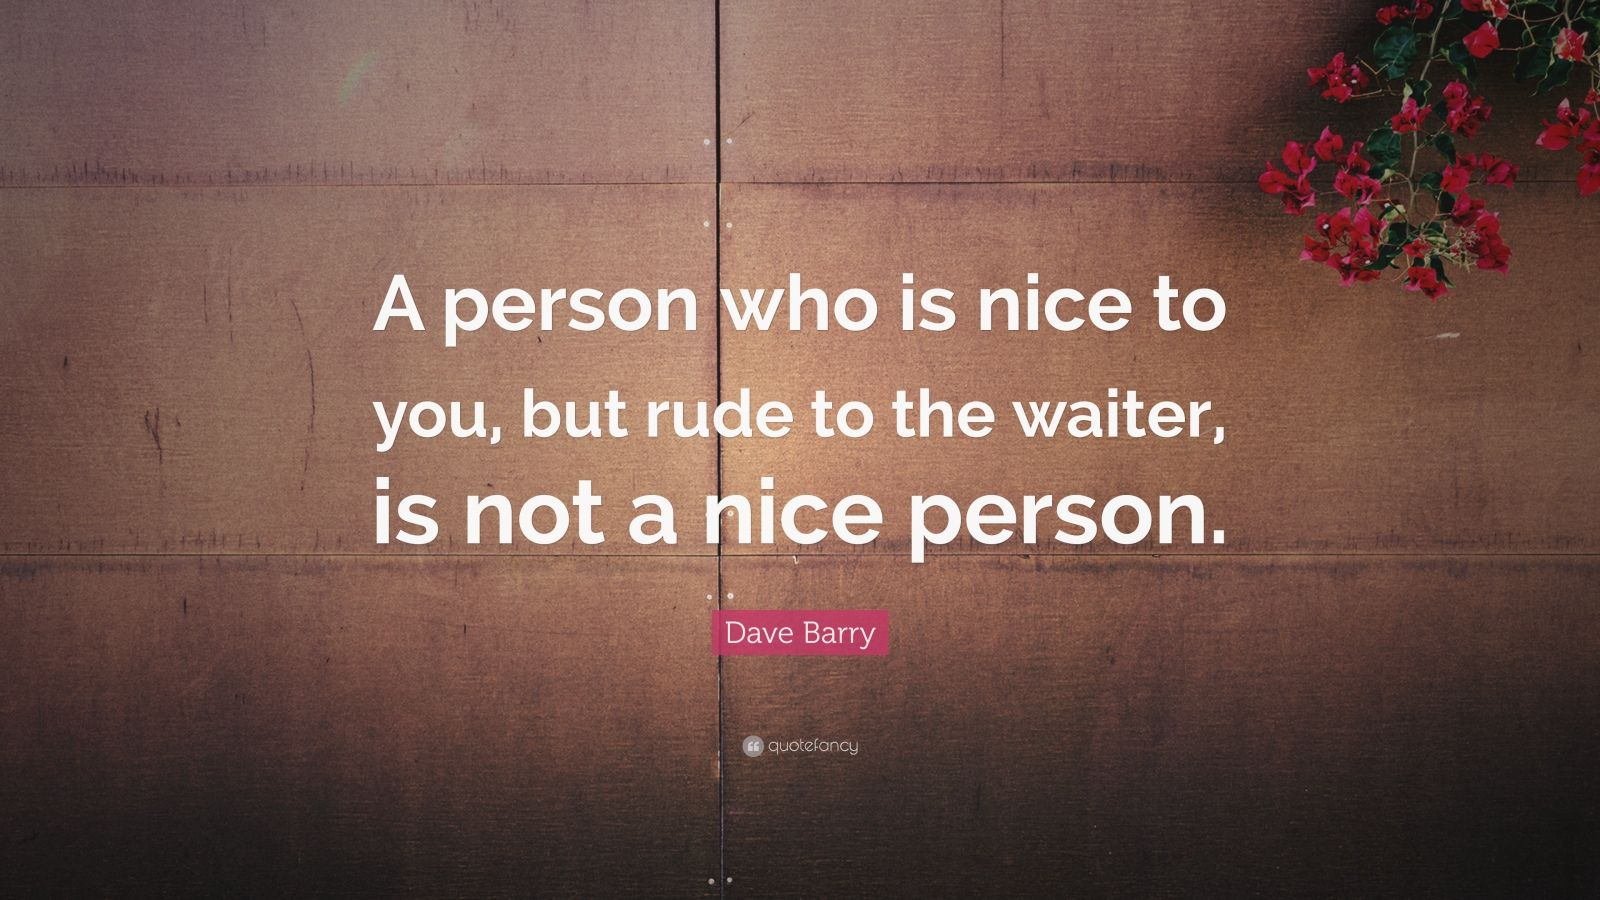 Business Success Quotes Wallpaper Dave Barry Quote A Person Who Is Nice To You But Rude